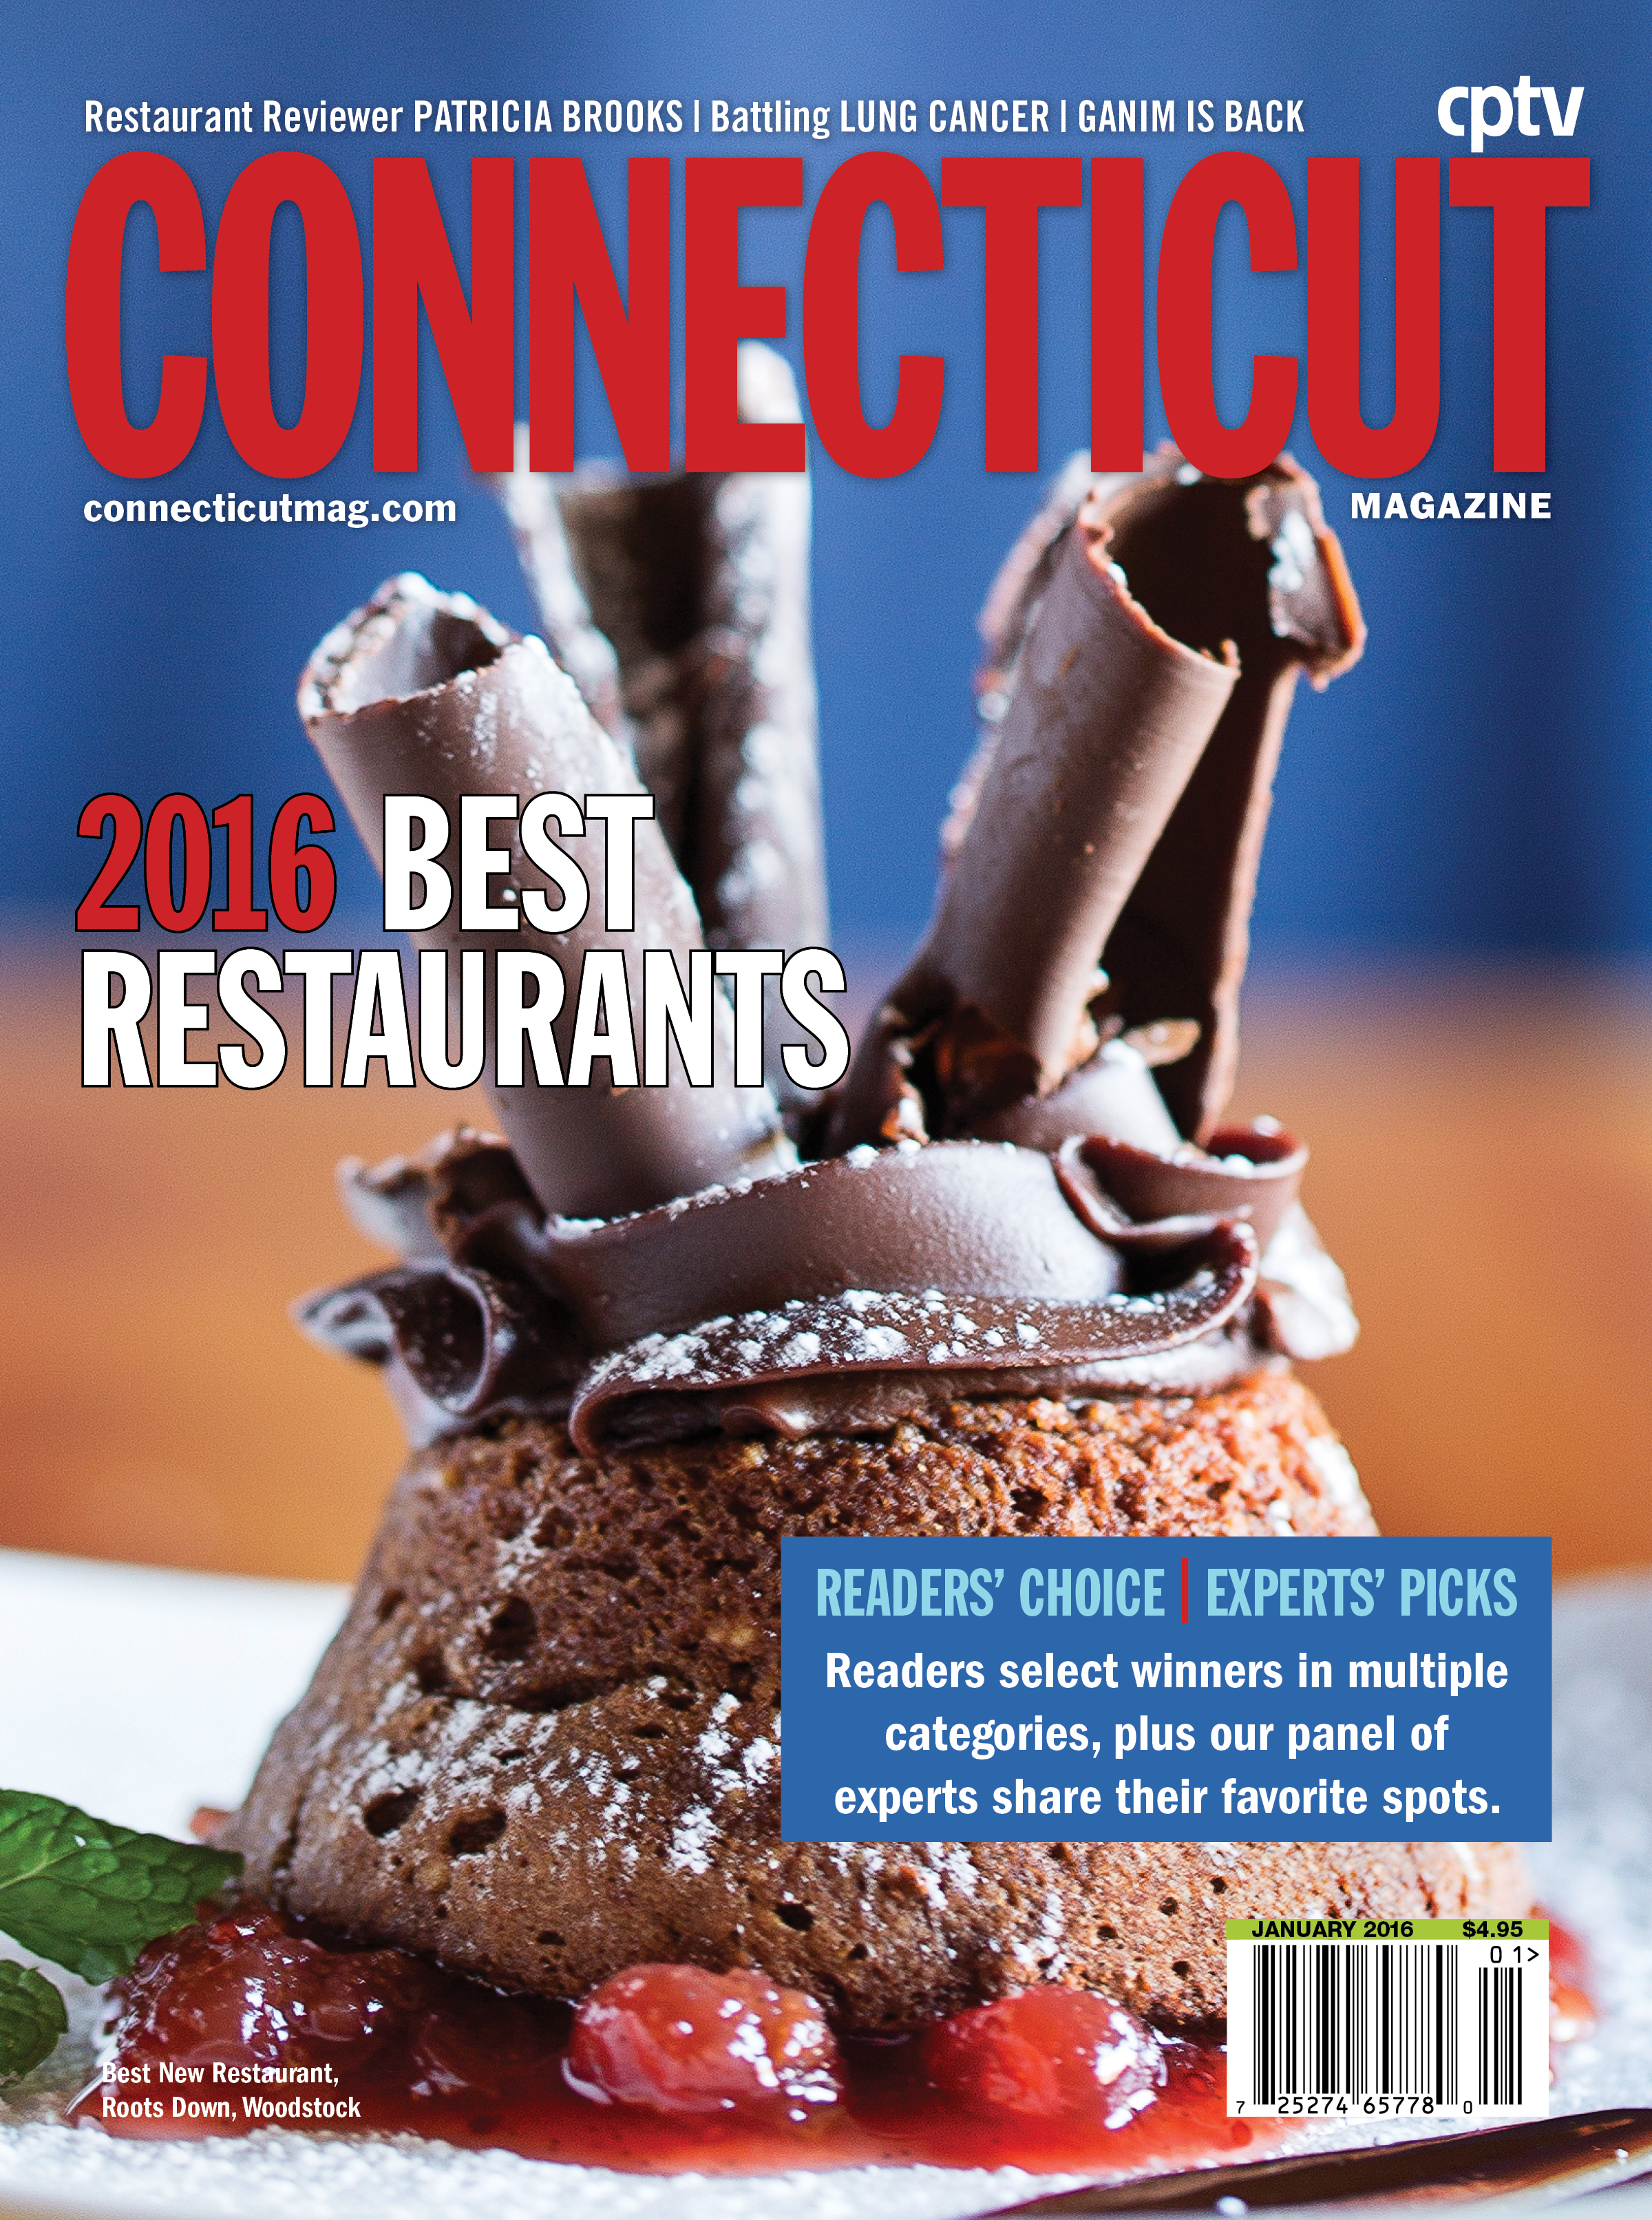 the hideaway was featured in connecticut magazine - Raised Panel Restaurant 2016